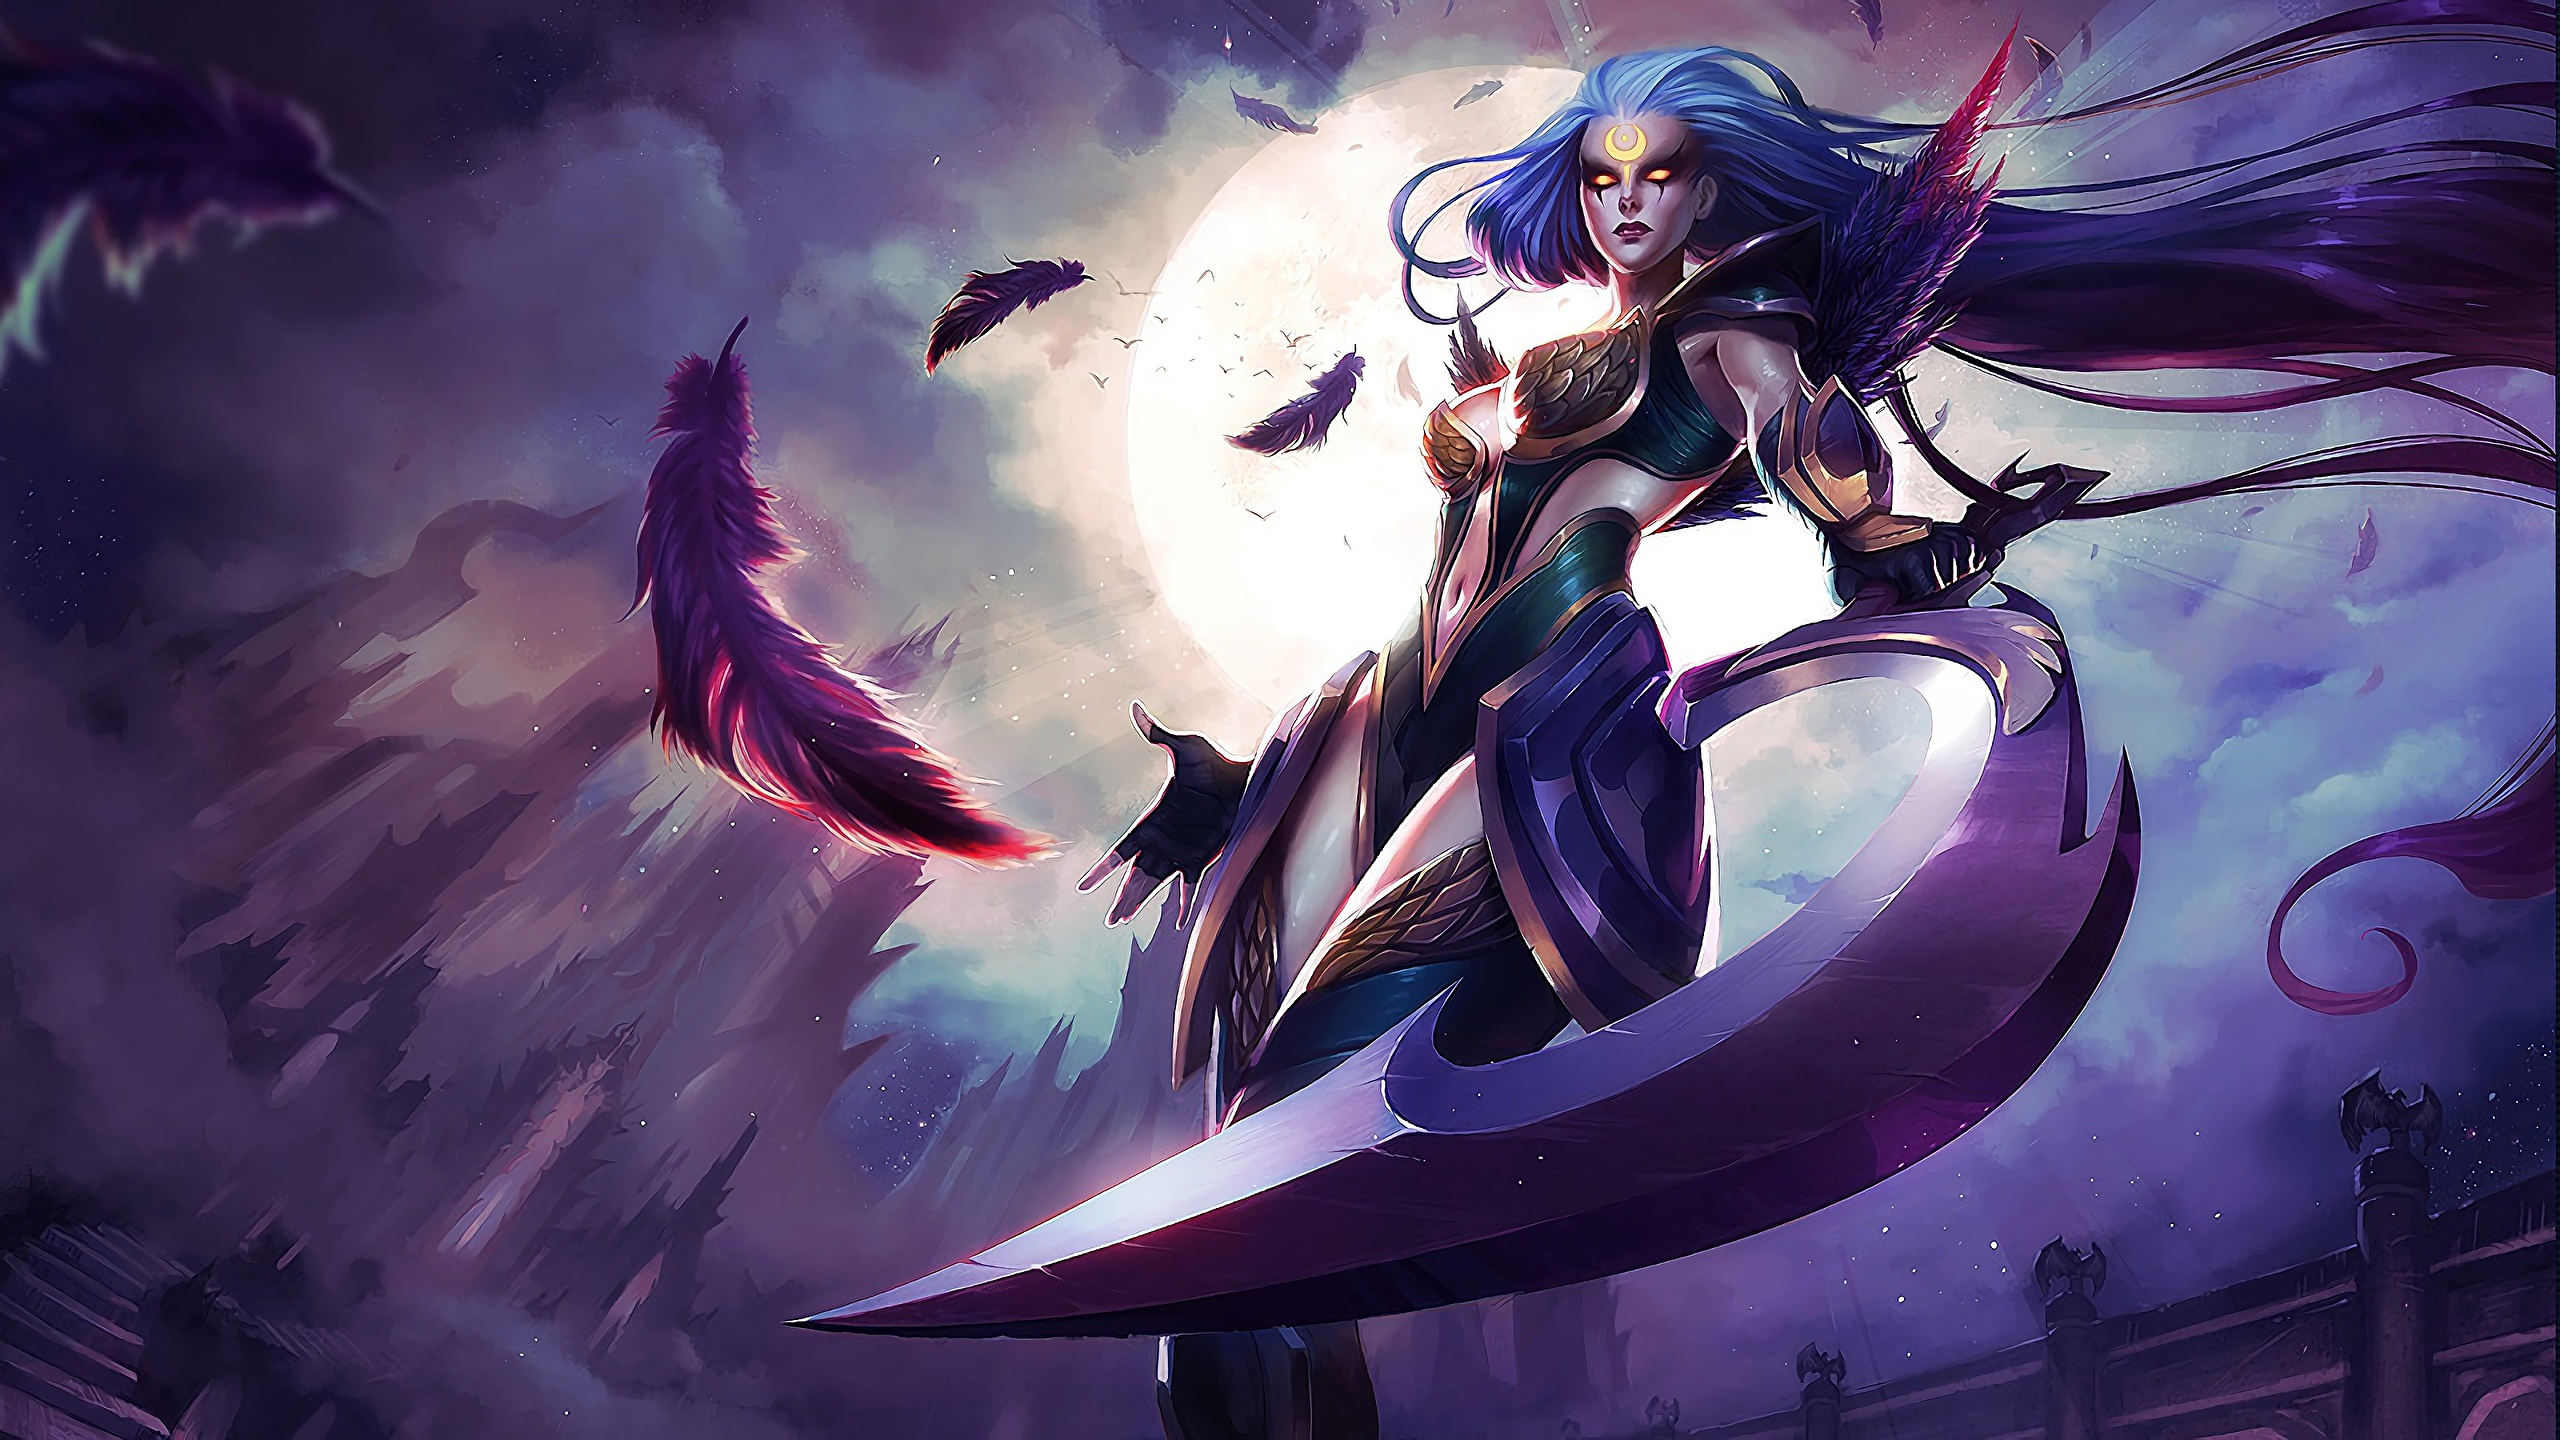 Fondos De Pantalla 2560x1440 Guerrero League Of Legends